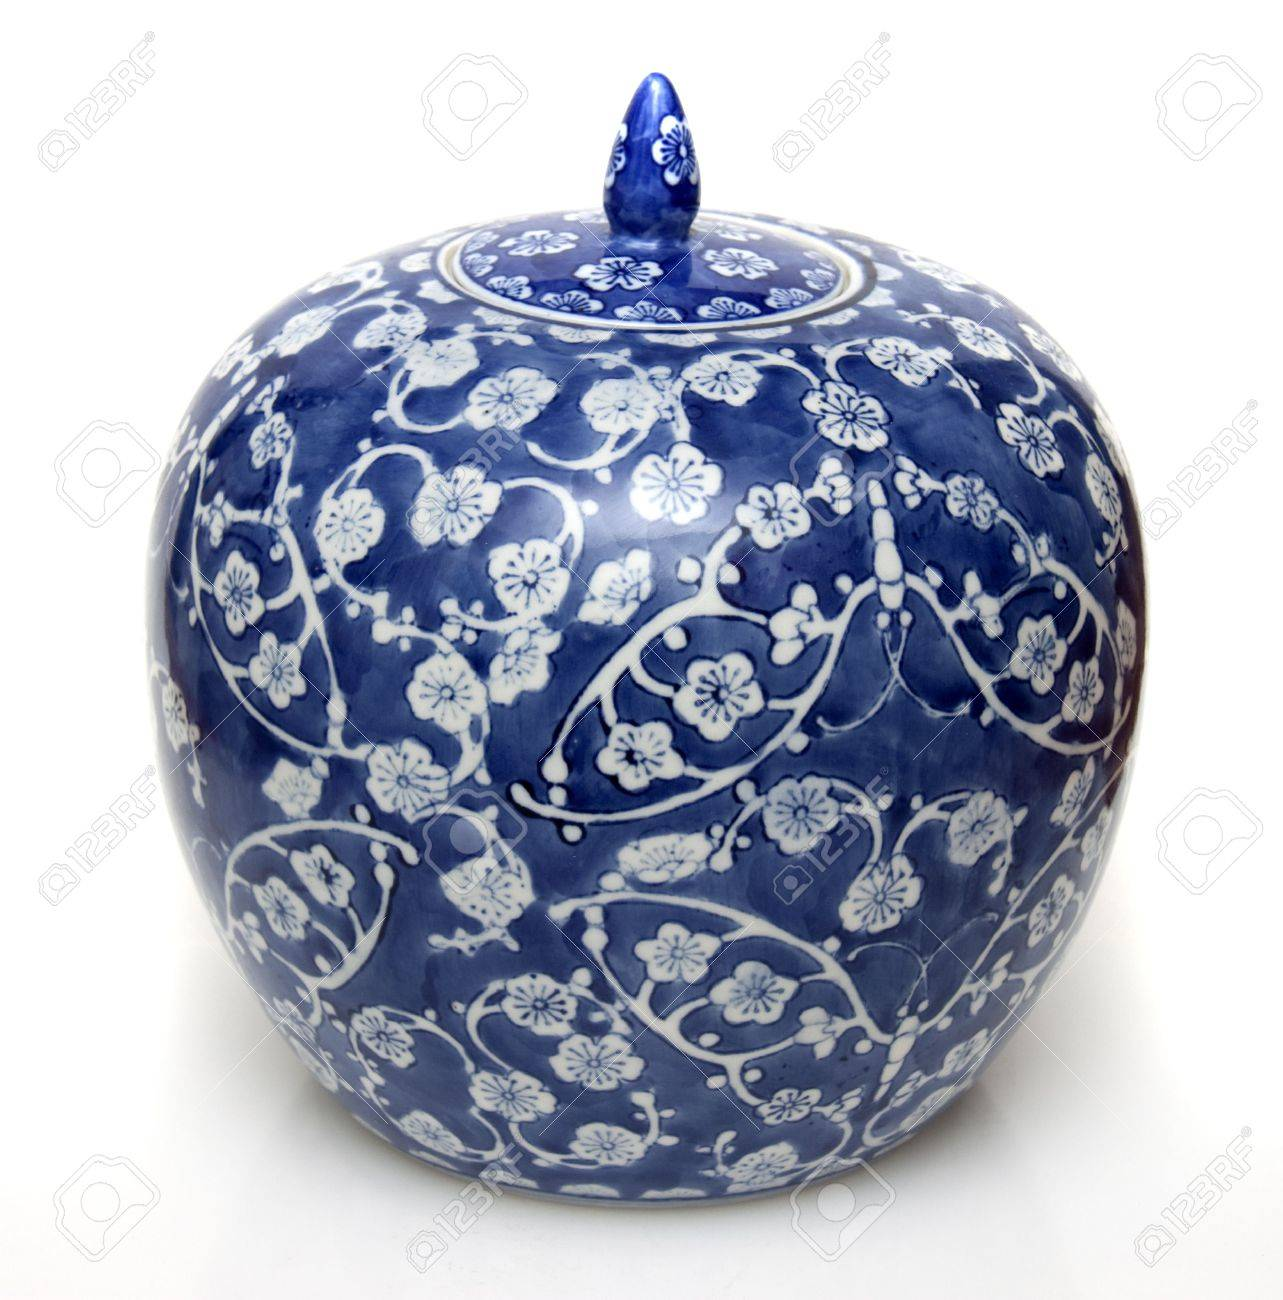 Blue Ginger Jar Part - 28: A Chinese Blue Ceramic Ginger Jar In Isolation Stock Photo - 7675085